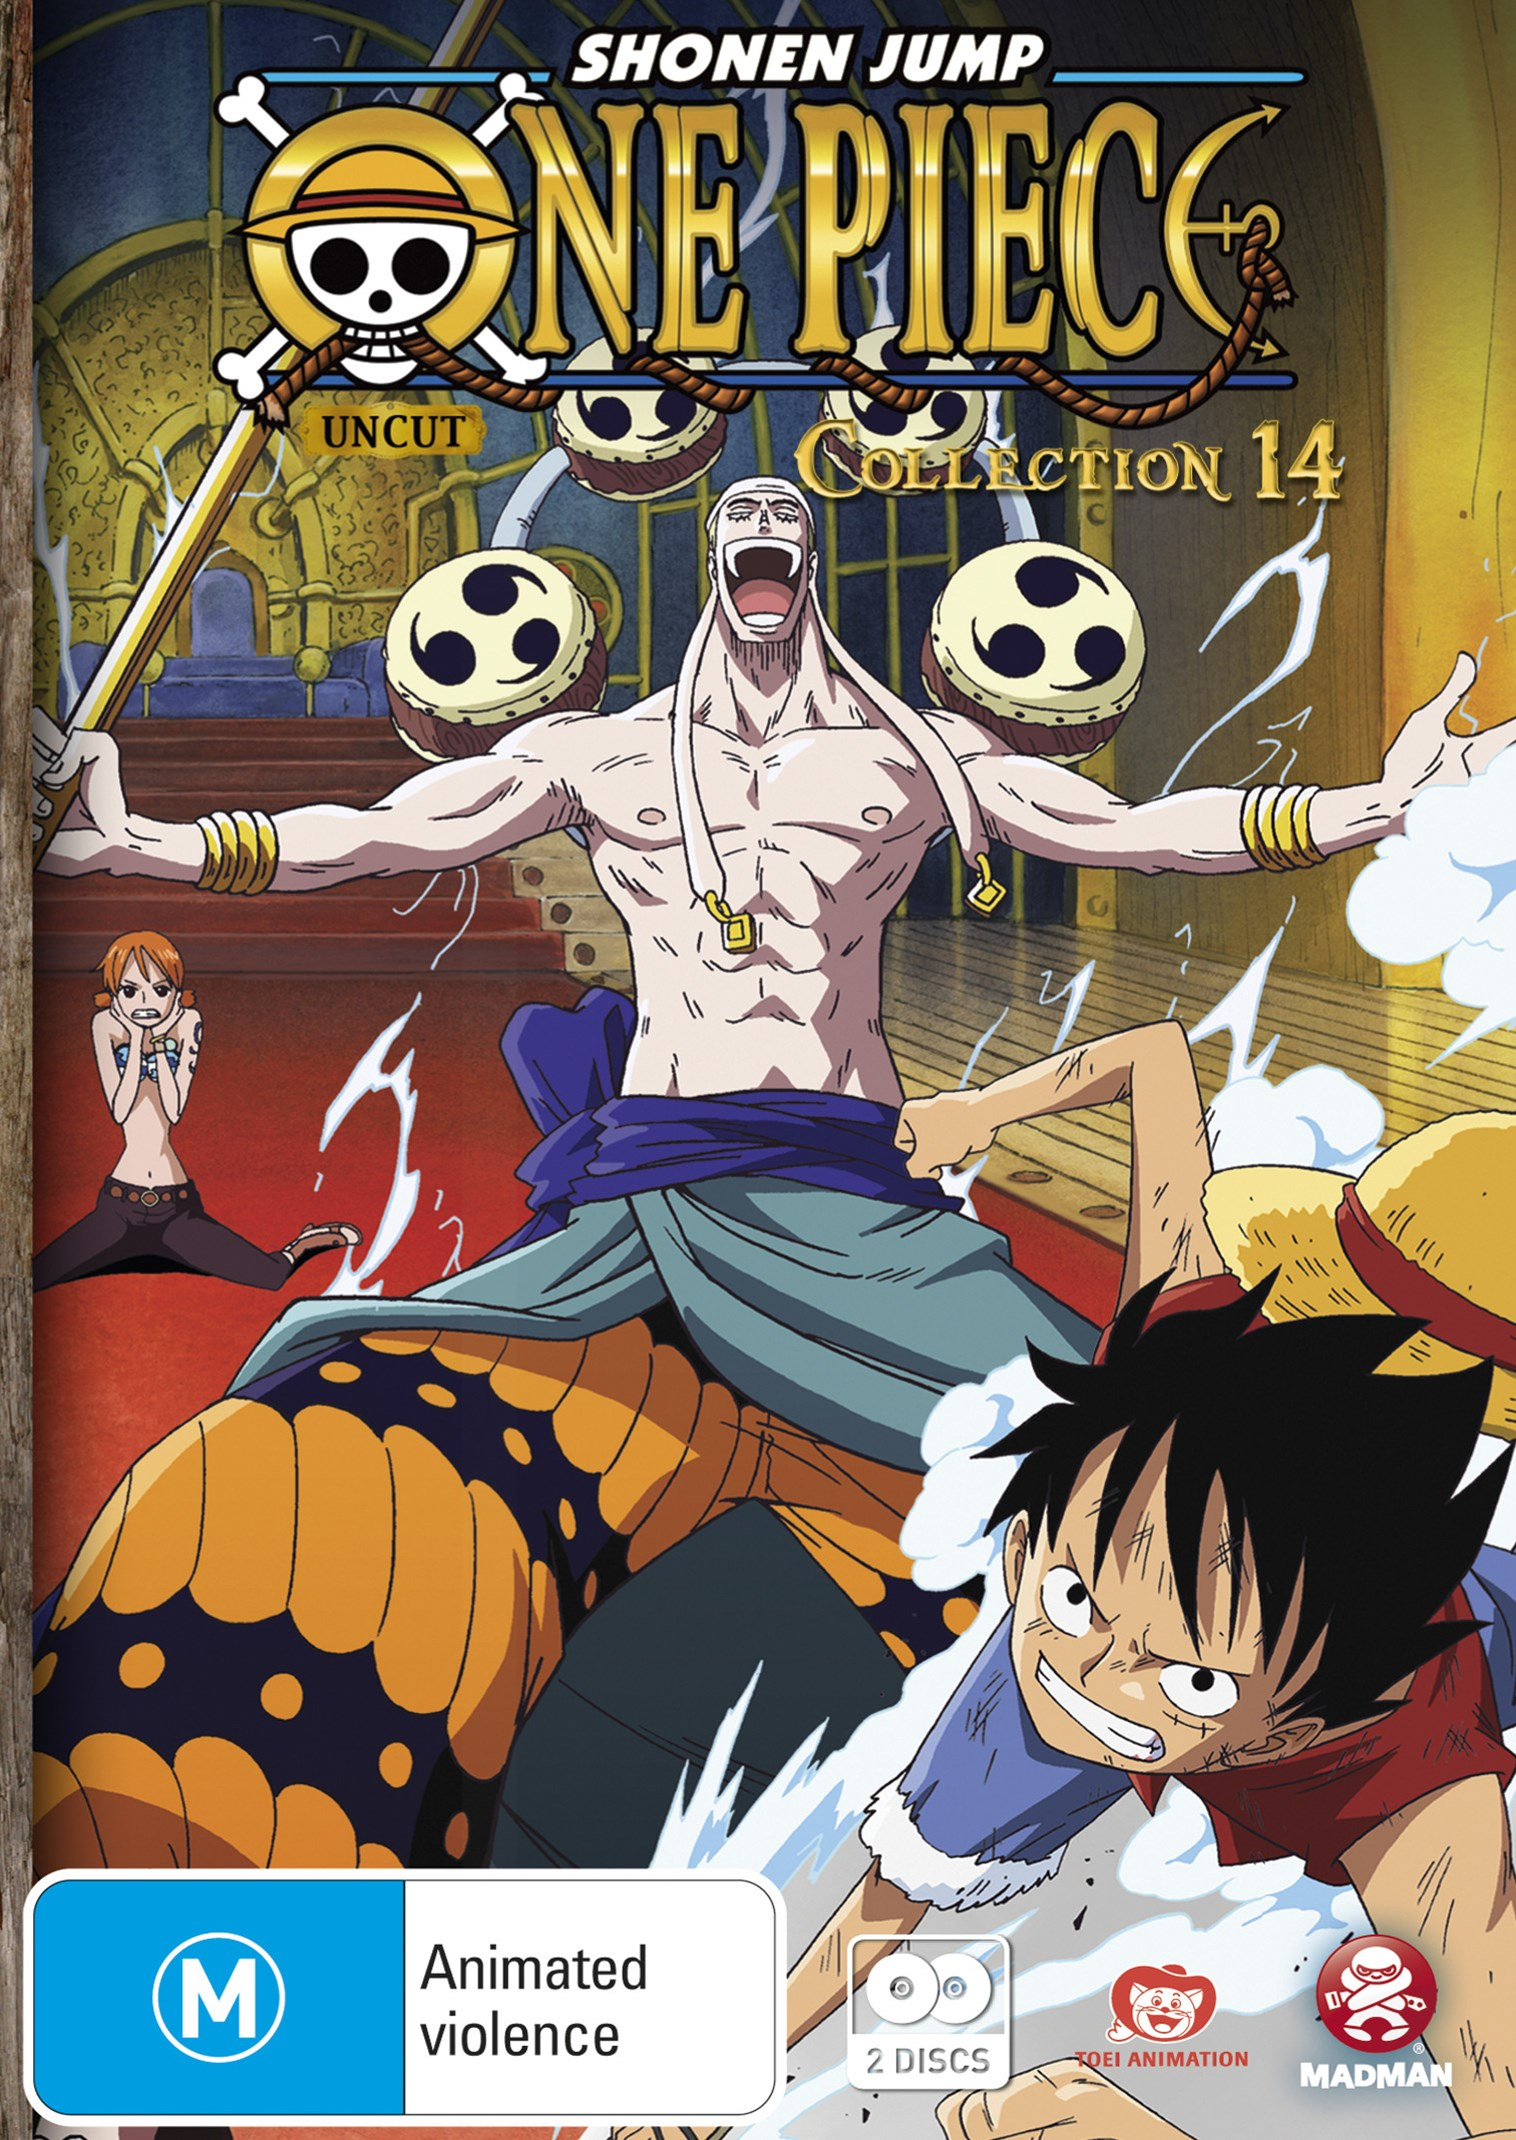 One Piece (Uncut) Collection 14 (Eps 170-182)